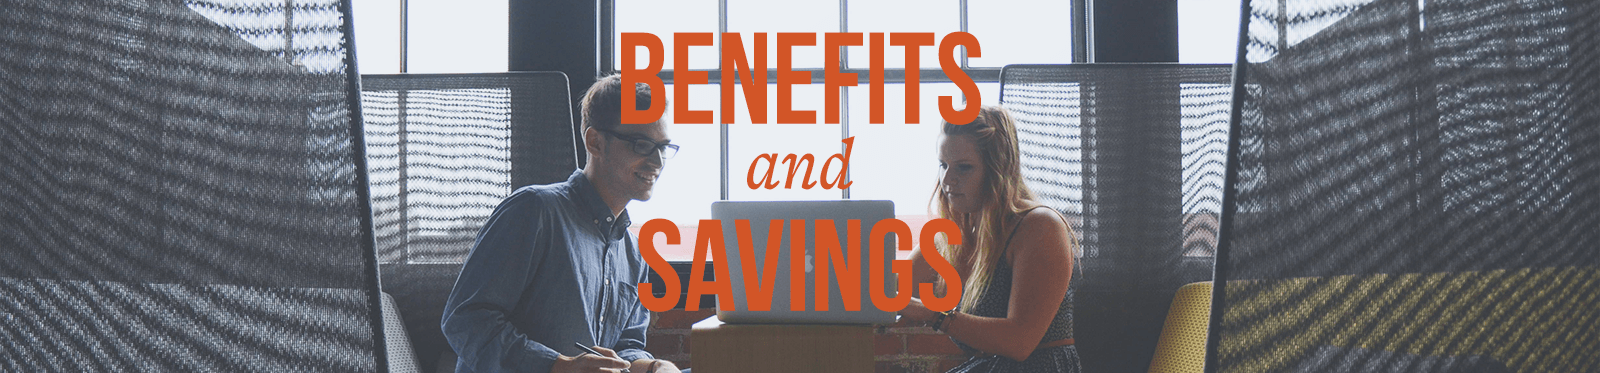 benefits and savings slider image